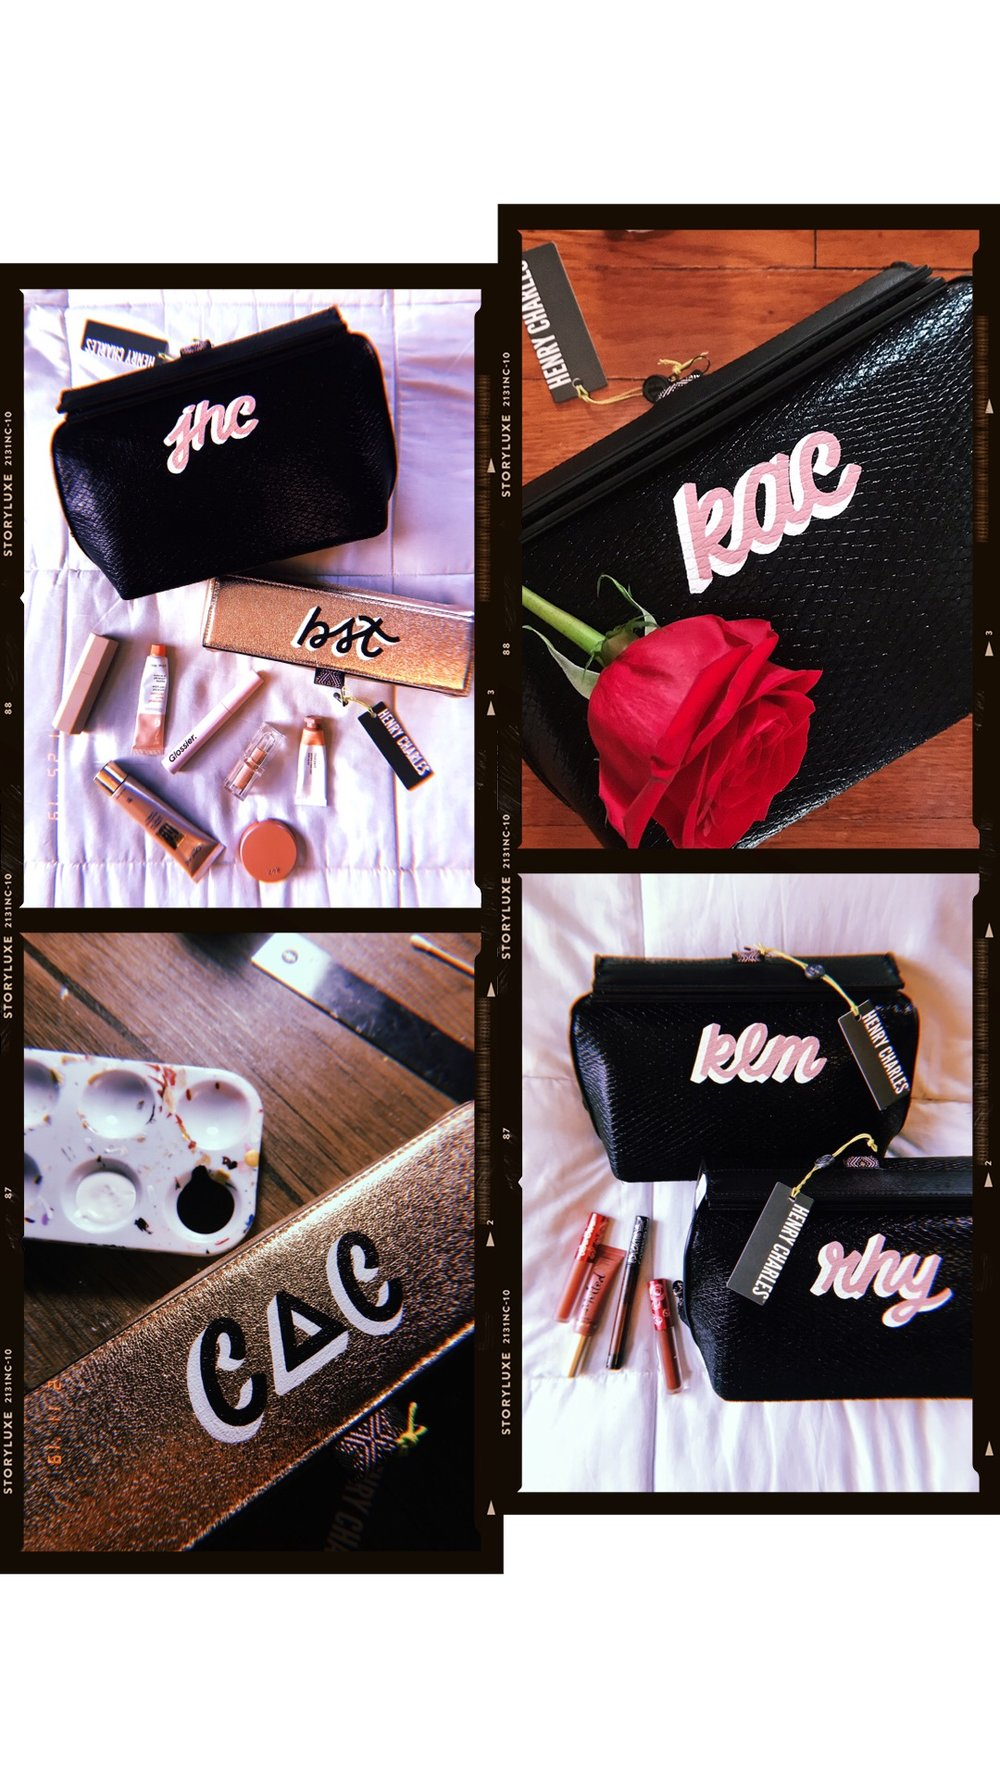 lauren x henry charles - So happy to announce that I've partnered with designer cosmetic bag brand HENRY CHARLES. As a part of their new Customize Your Bag feature, I'll be lettering their incredible RO-PRO Large Deluxe Cosmetic Clutch and RO-PRO Brush + Makeup Case for clients that want to spice up their HC purchase!AS SEEN ON SHEFINDS.COM + TIFFANY HADDISH